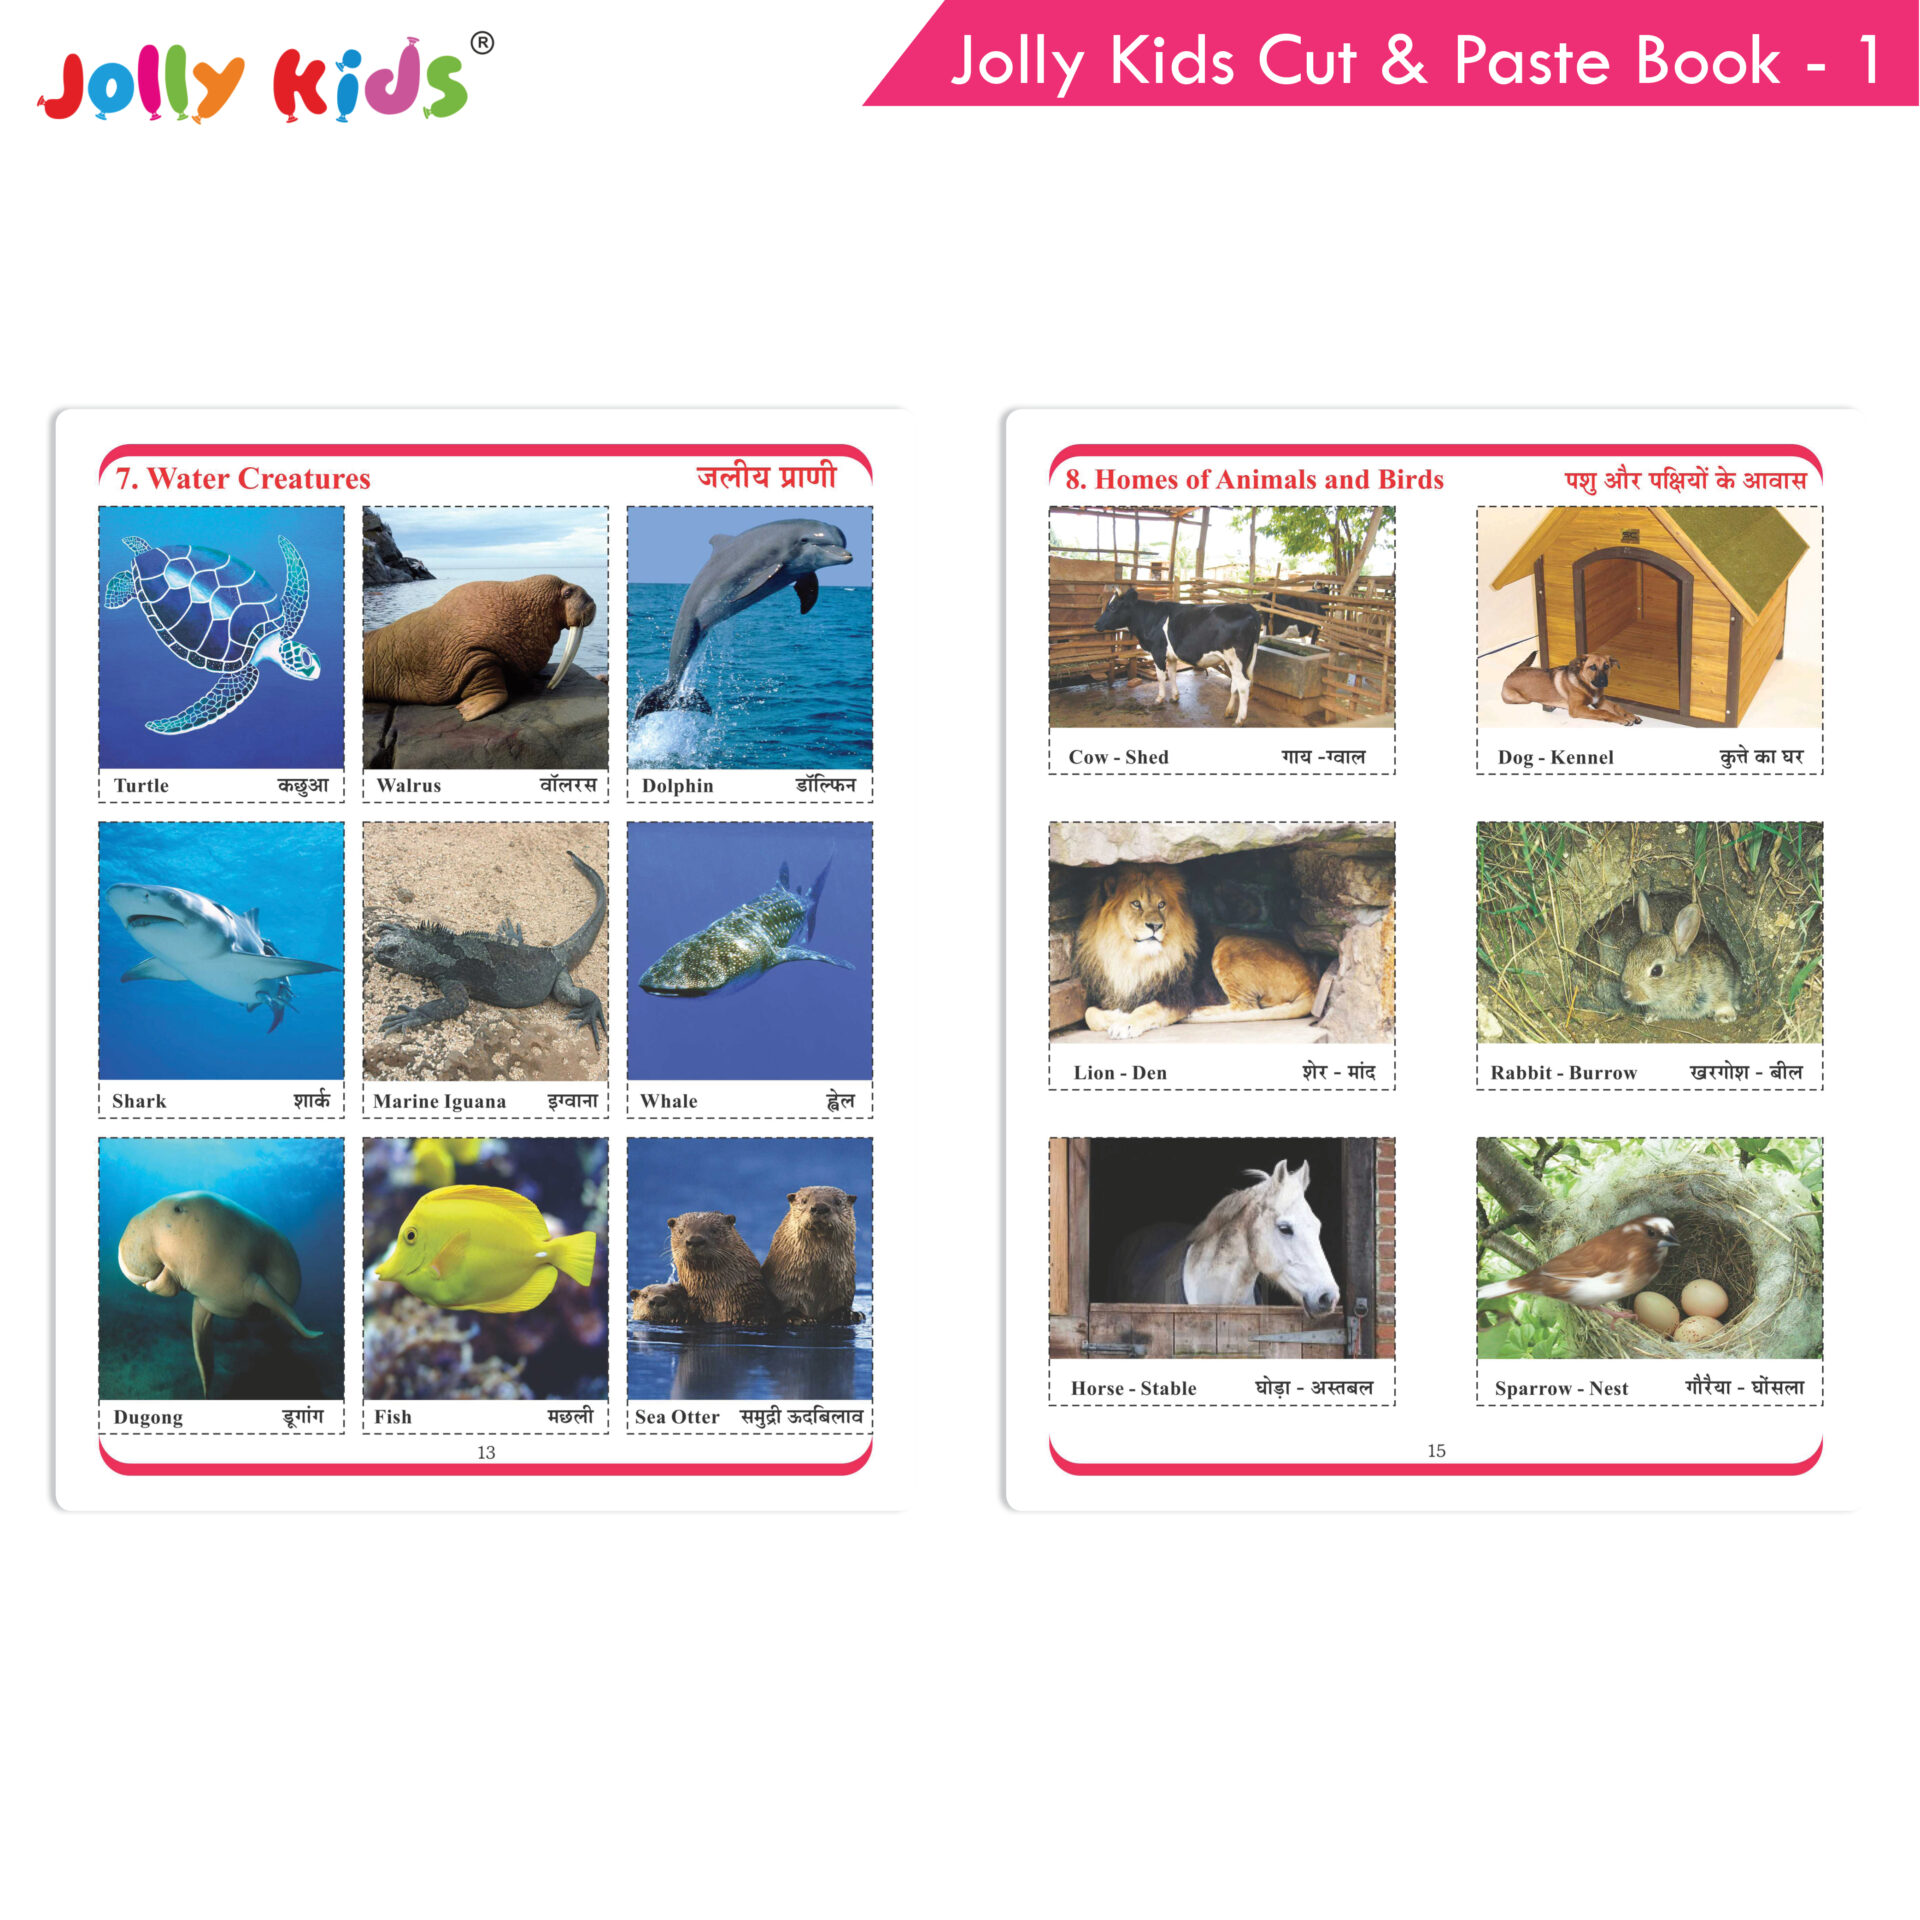 Jolly Kids Cut and Paste Book 1 6